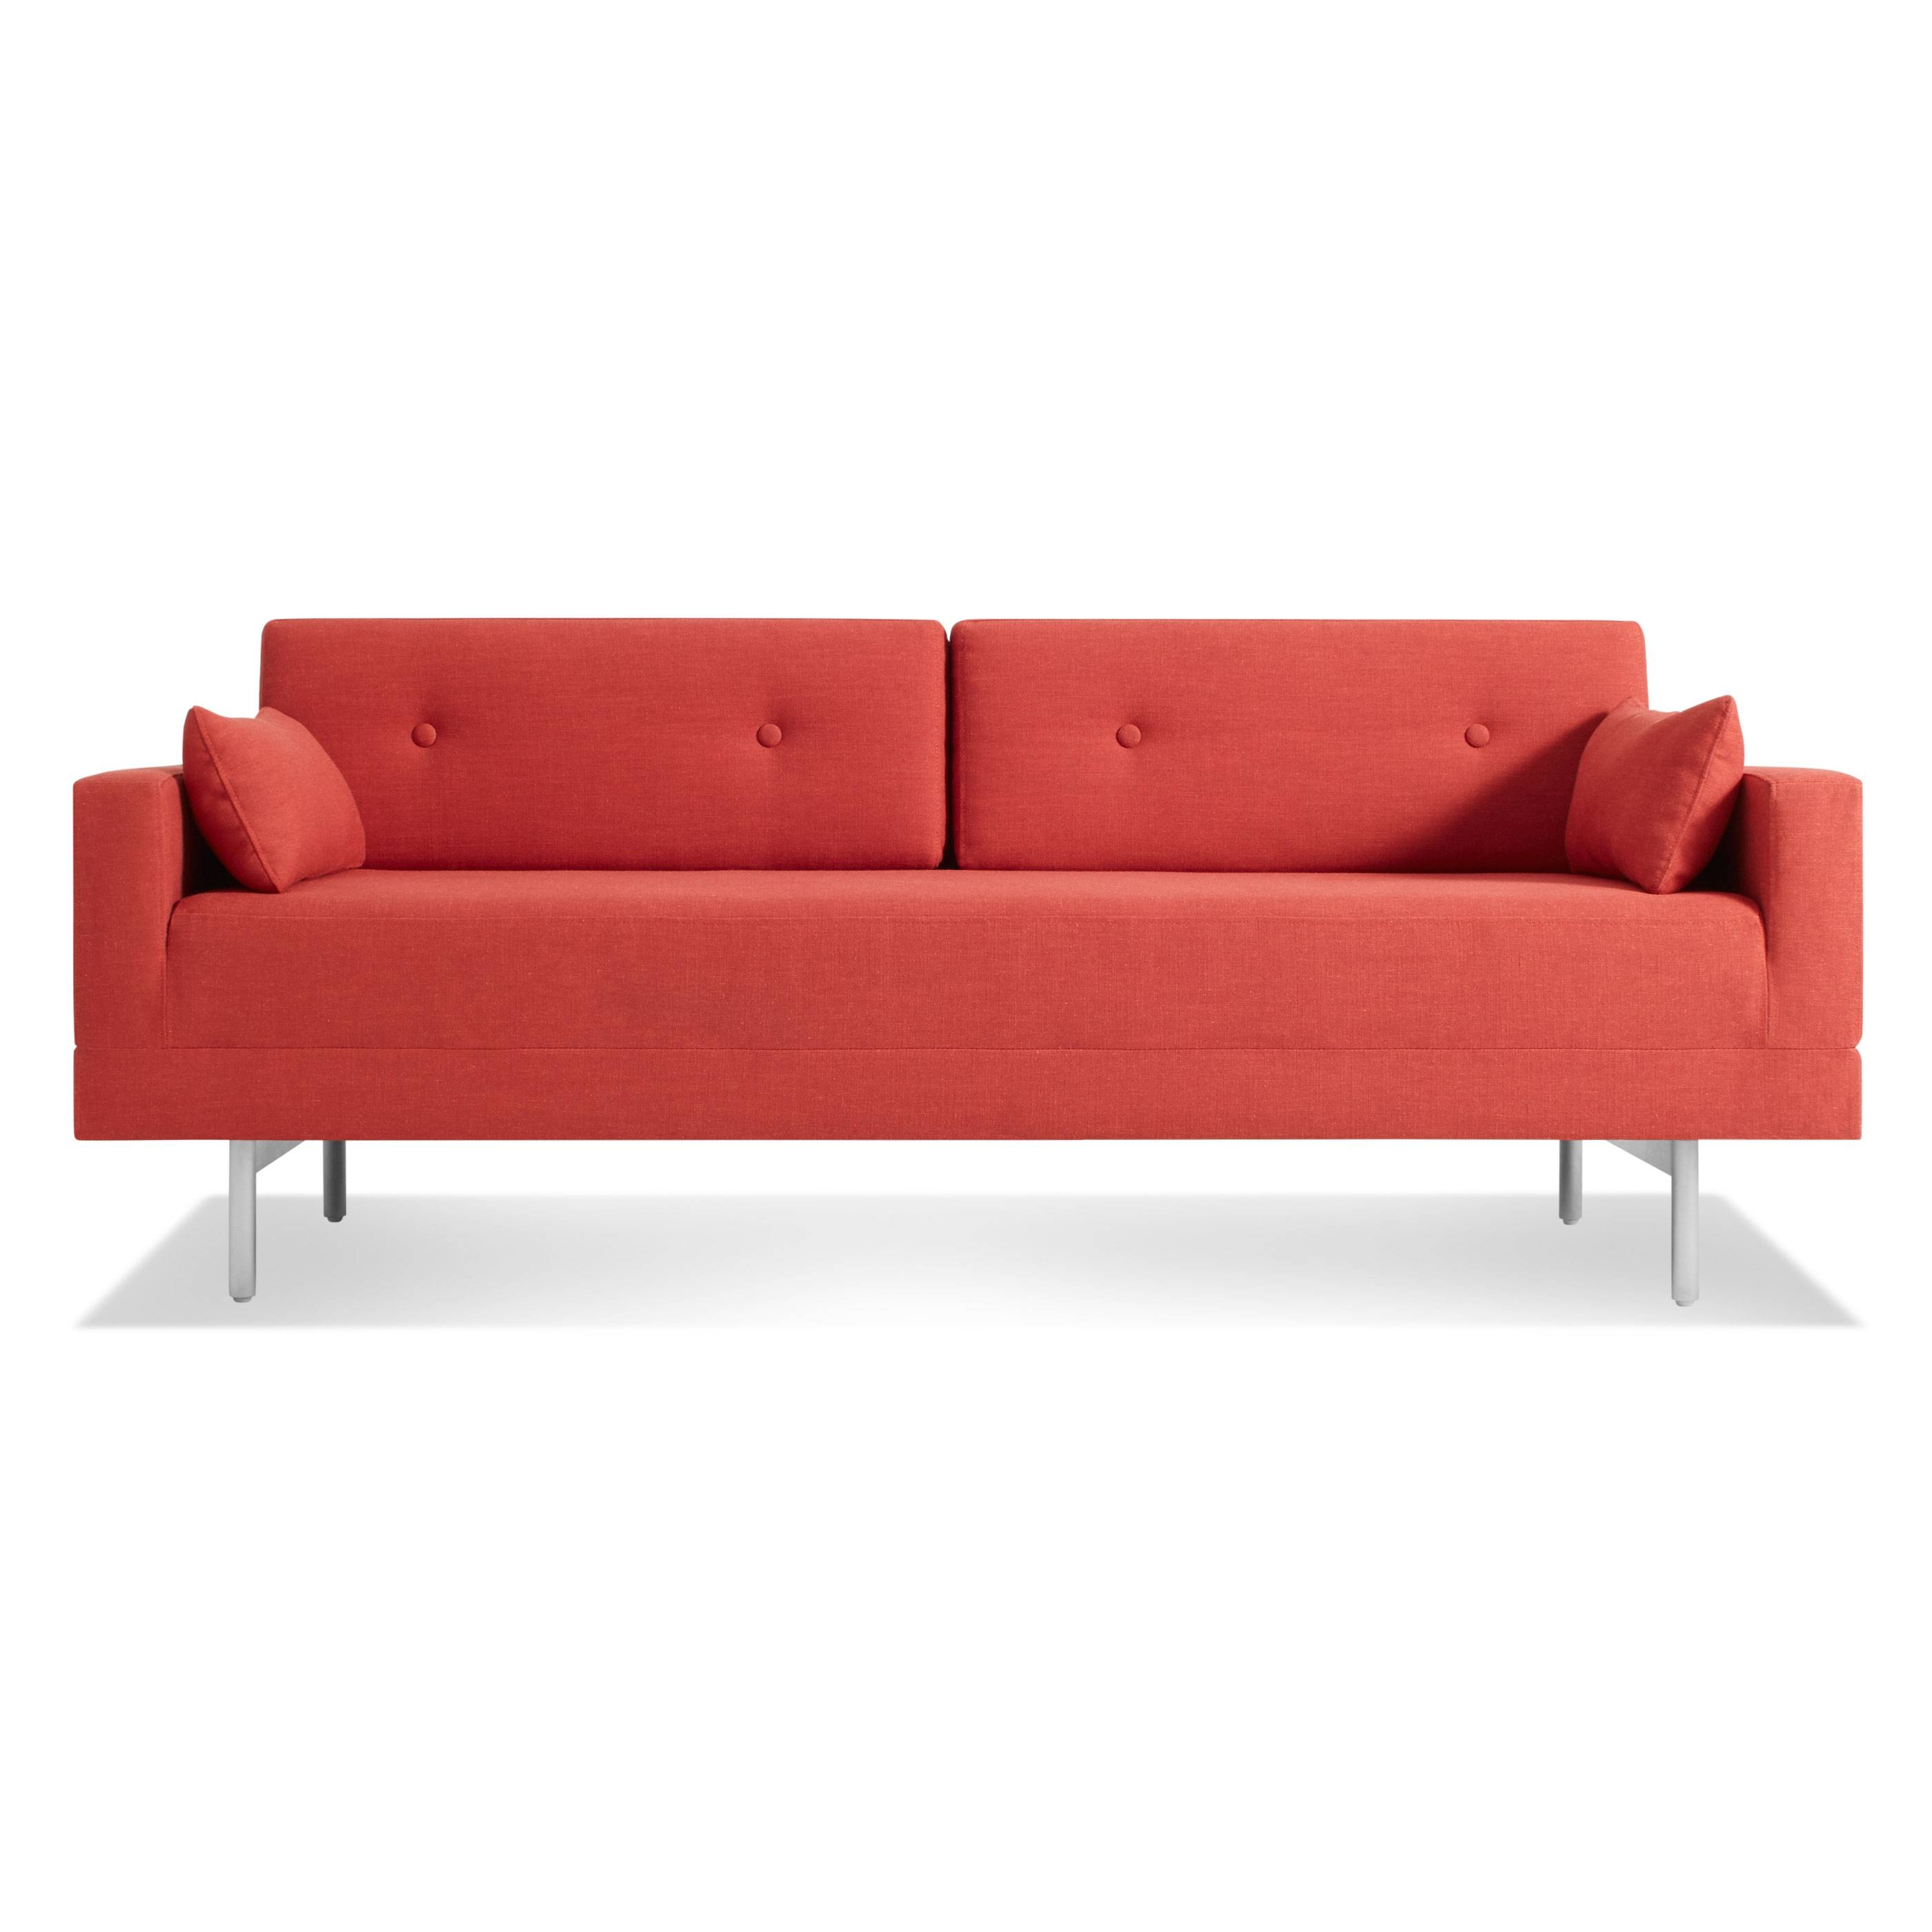 One Night Stand Modern Queen Sleeper Sofa | Blu Dot pertaining to Blu Dot Sofas (Image 9 of 15)